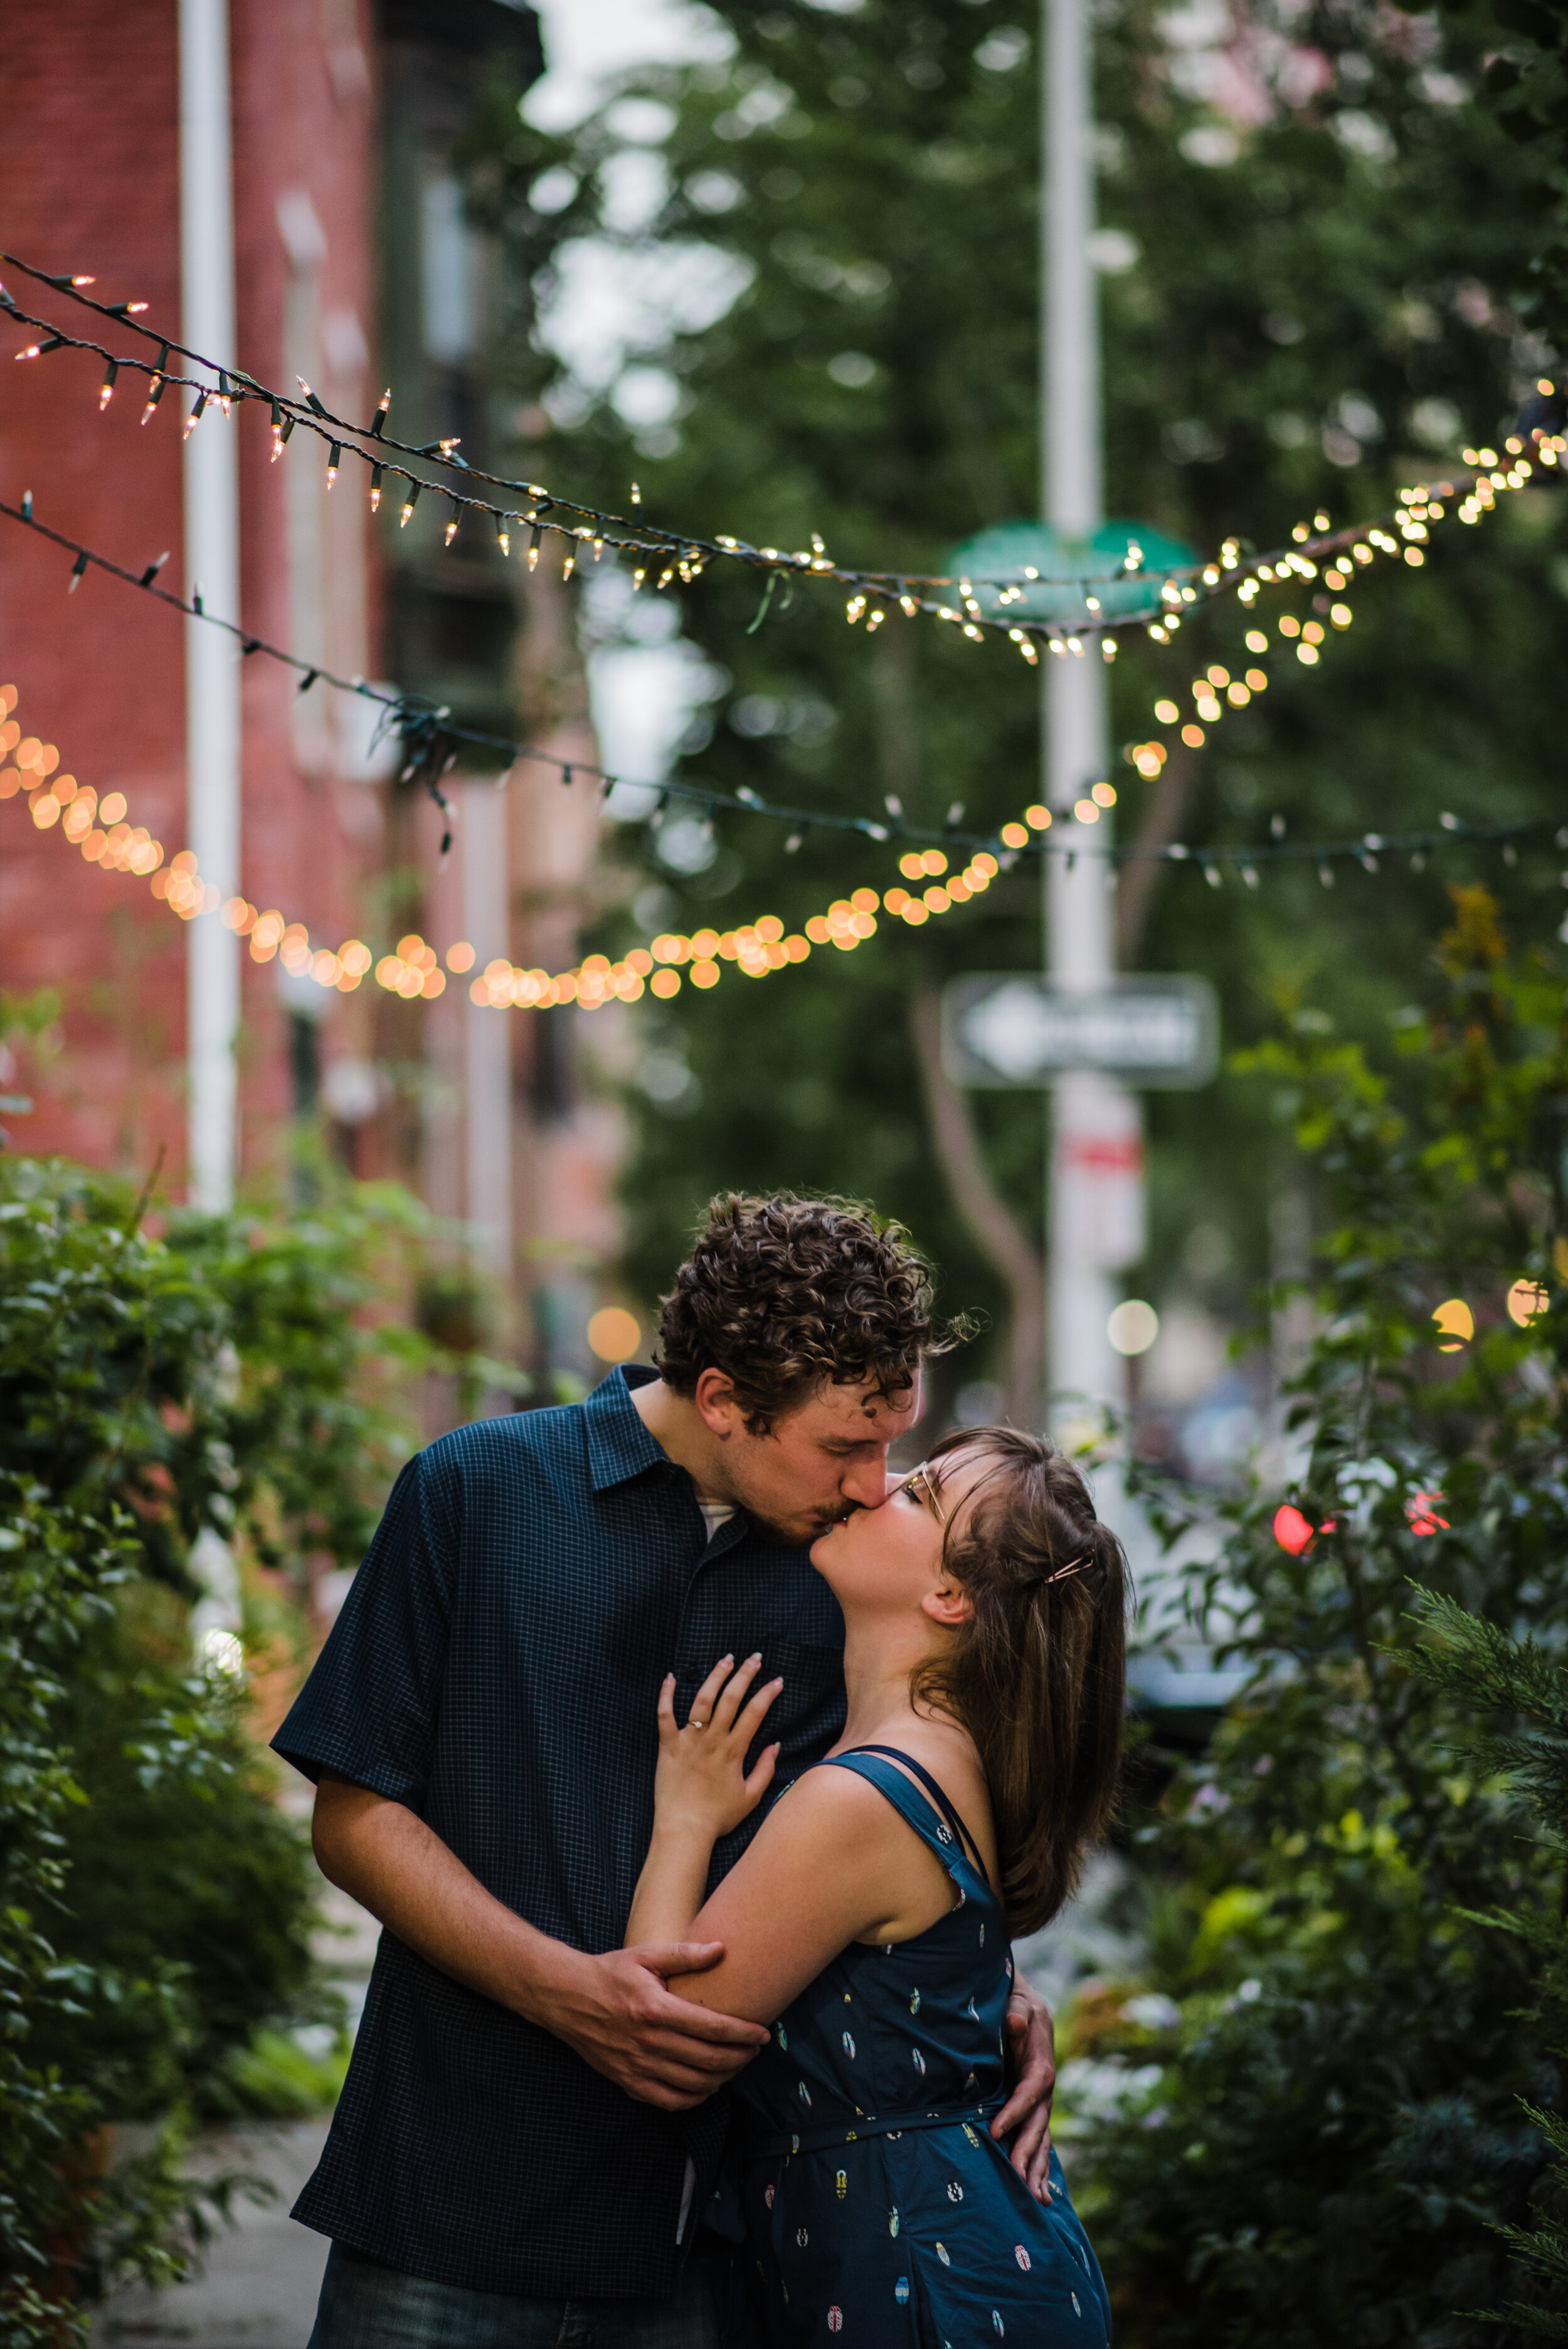 Philly engagement photography on a center city street under string lights.